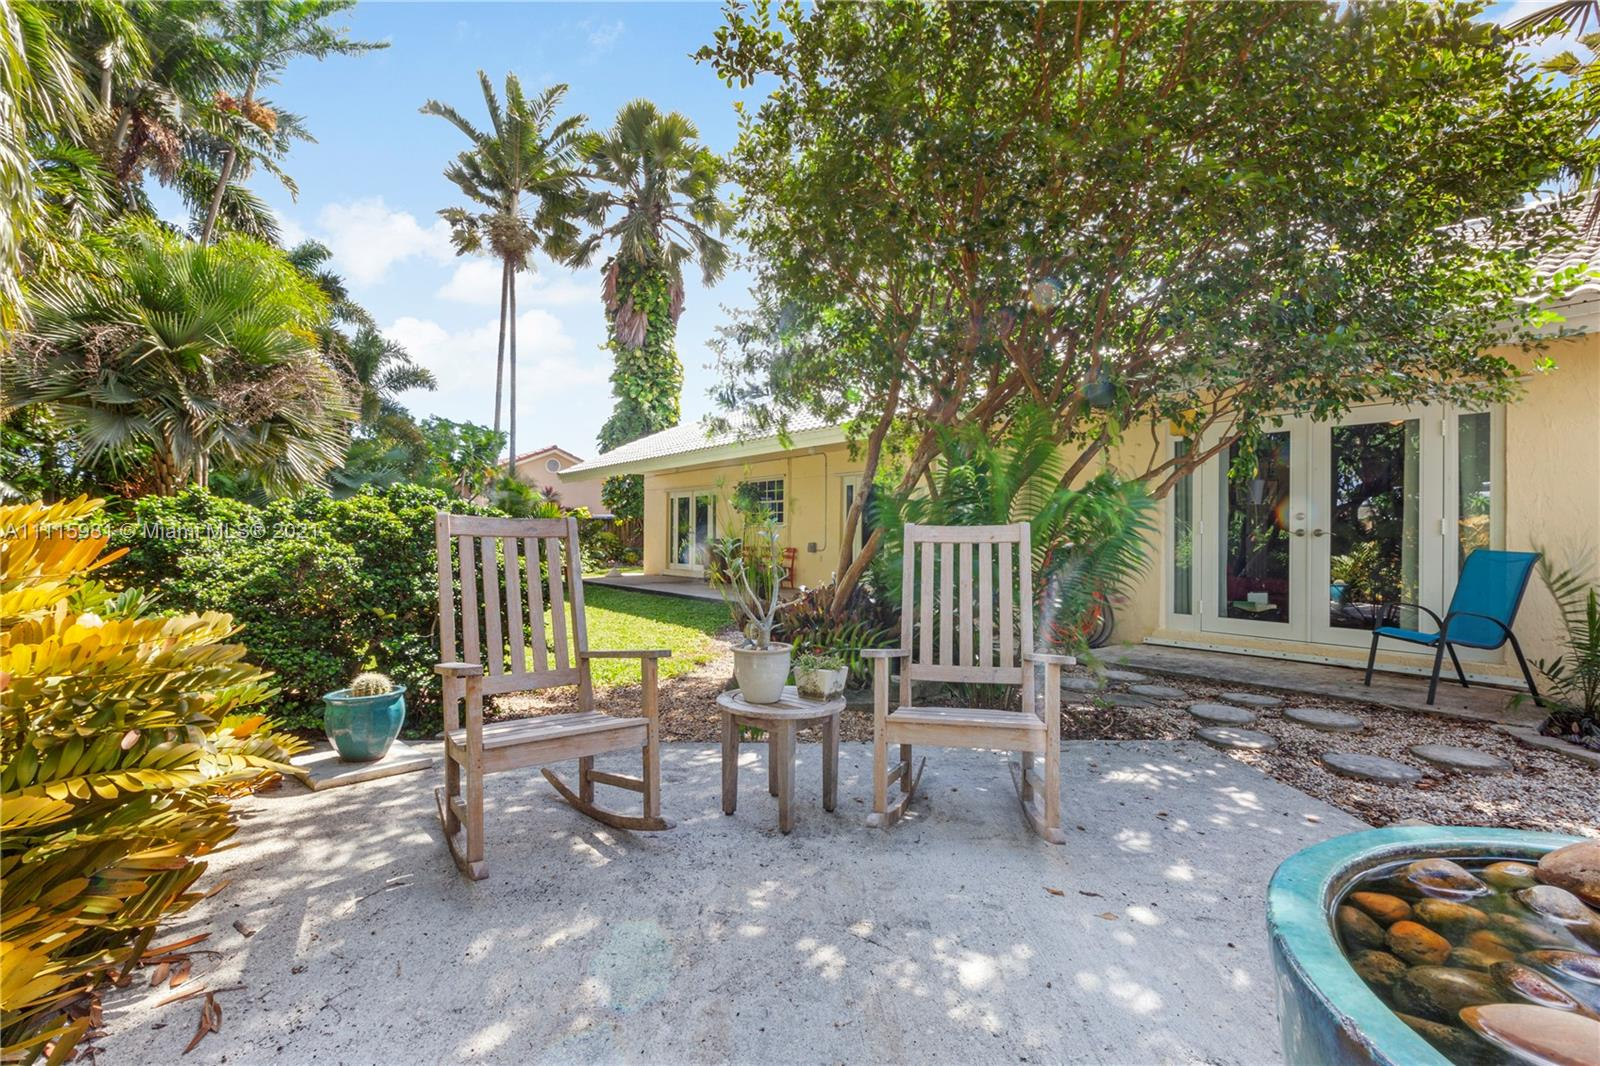 Single Family Home,For Sale,1439 NW 17th St, Homestead, Florida 33030,Brickell,realty,broker,condos near me